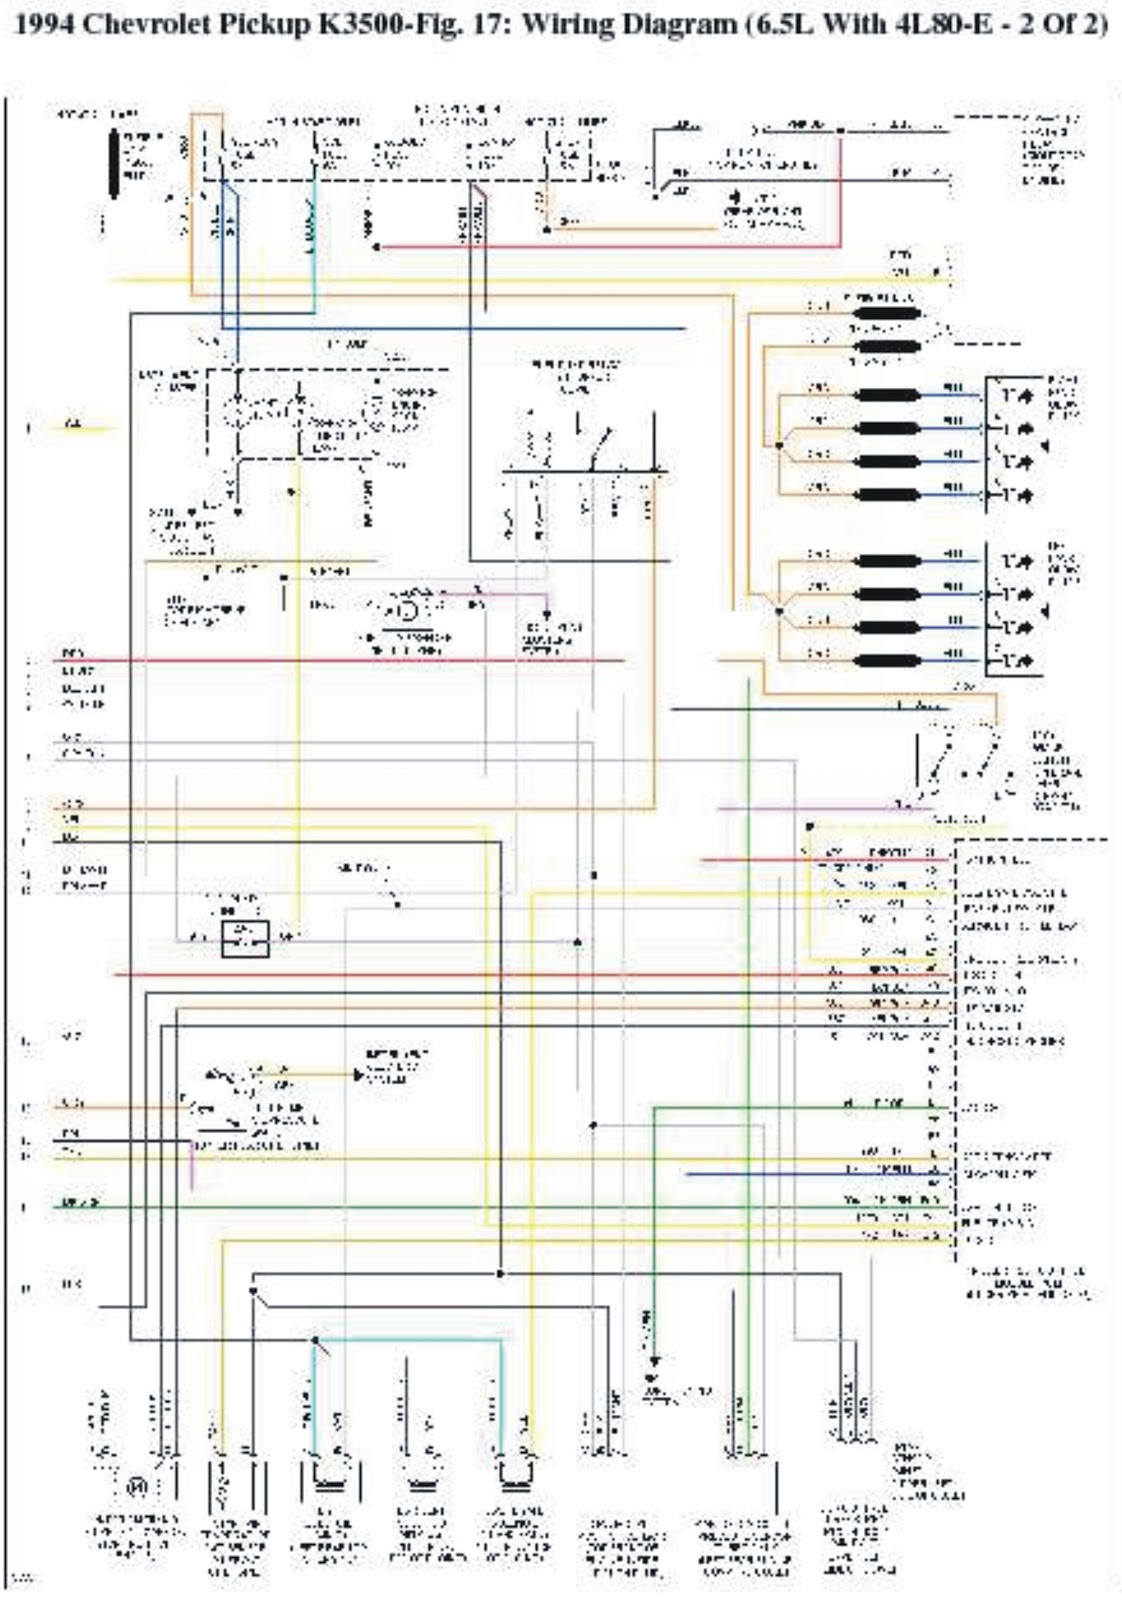 1990 gmc sierra 1500 wiring diagram 1990 gmc sierra 1500 2002 chevy suburban parts diagram chevy [ 1122 x 1600 Pixel ]